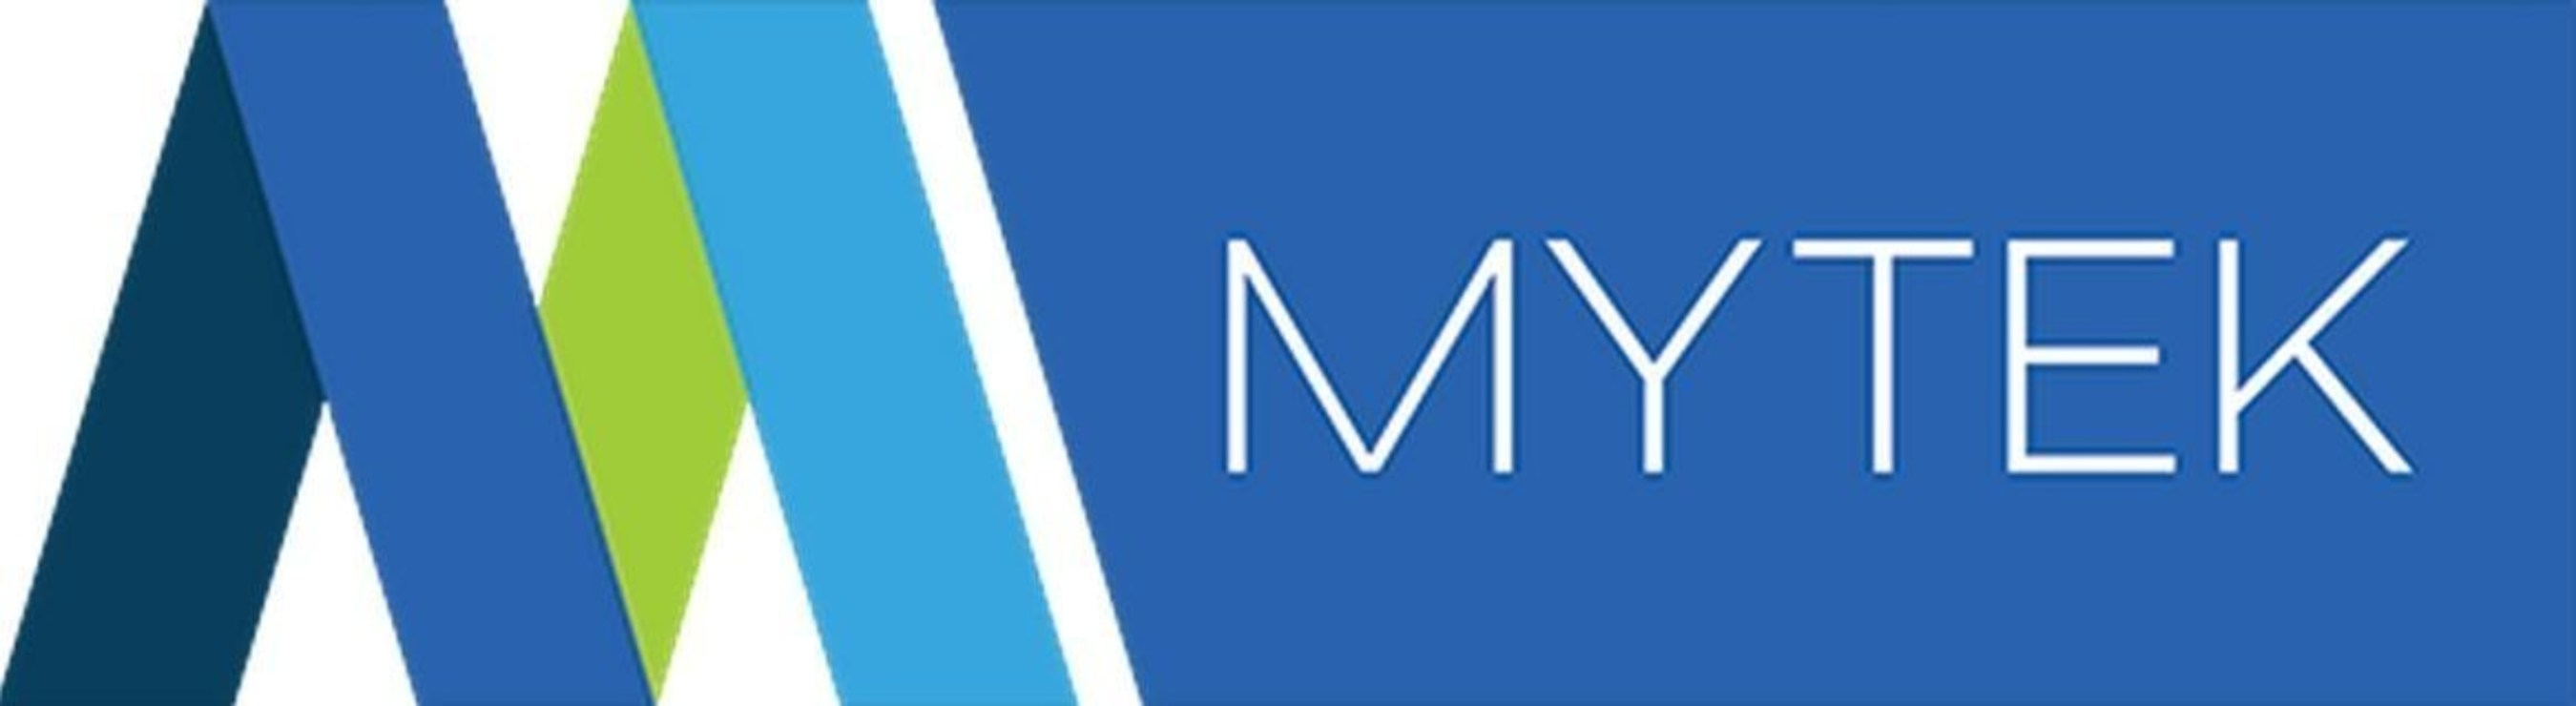 Mytek Network Solutions Releases New Resource Highlighting the Effects of Downtime on Business Performance